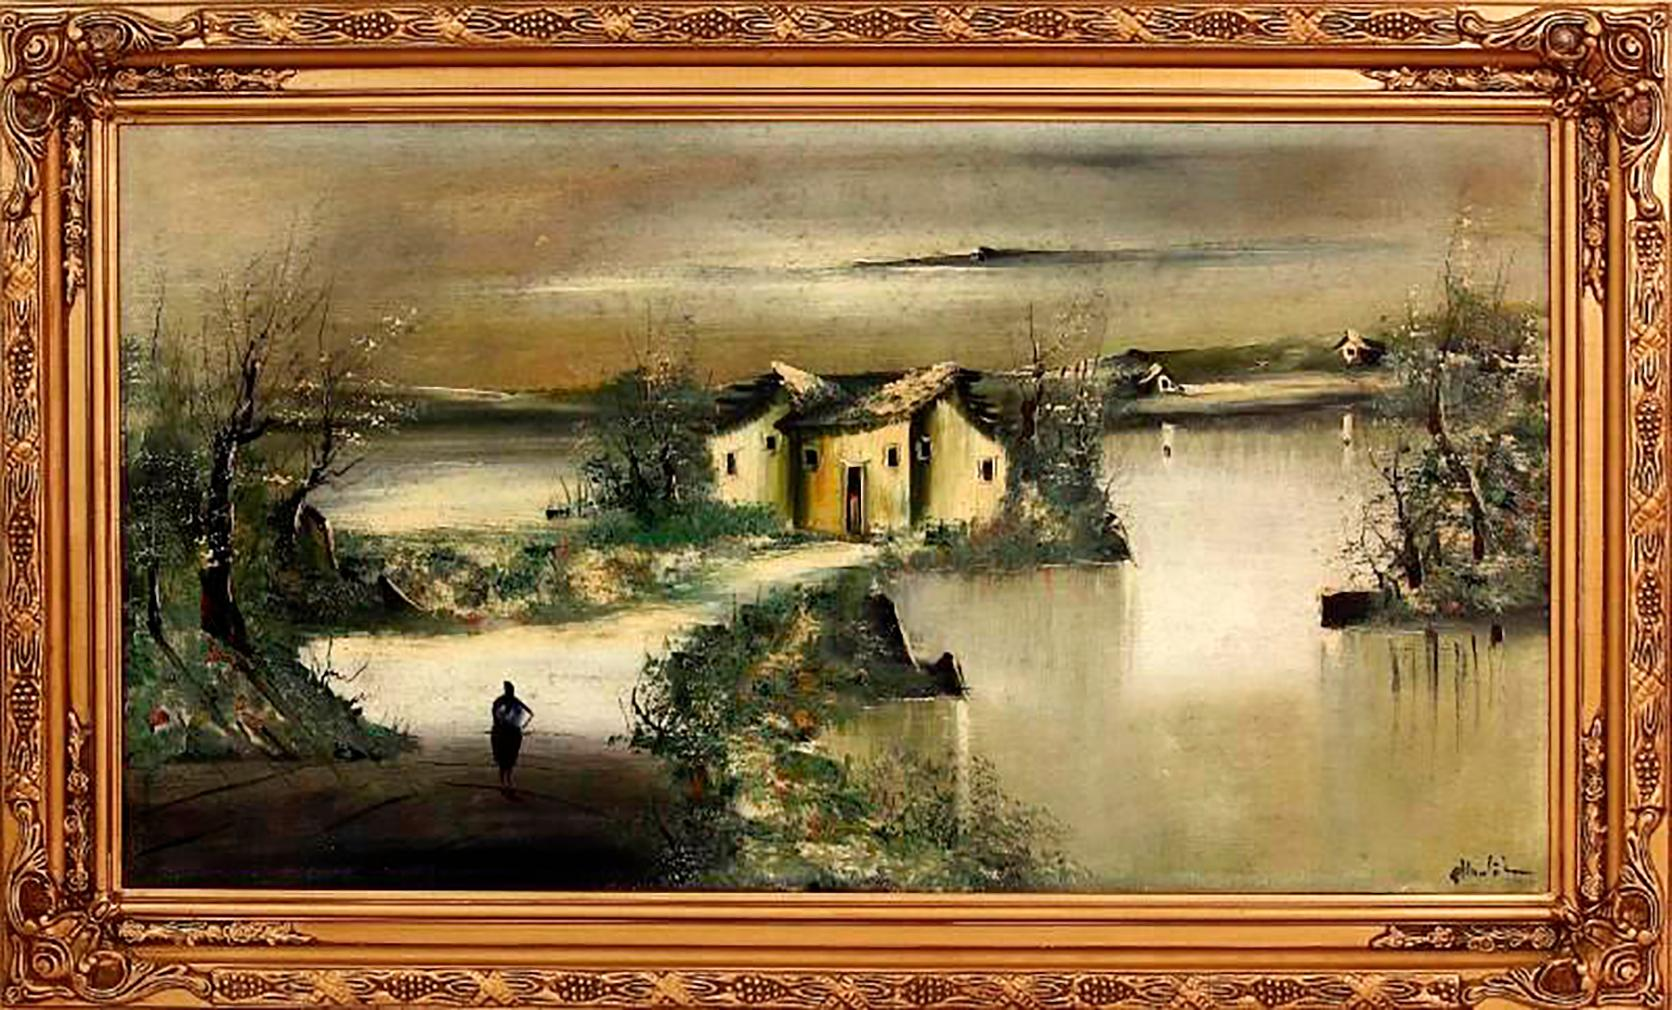 Houses And River-Large Impressionist Landscape Oil on Canvas Signed A.Huntington